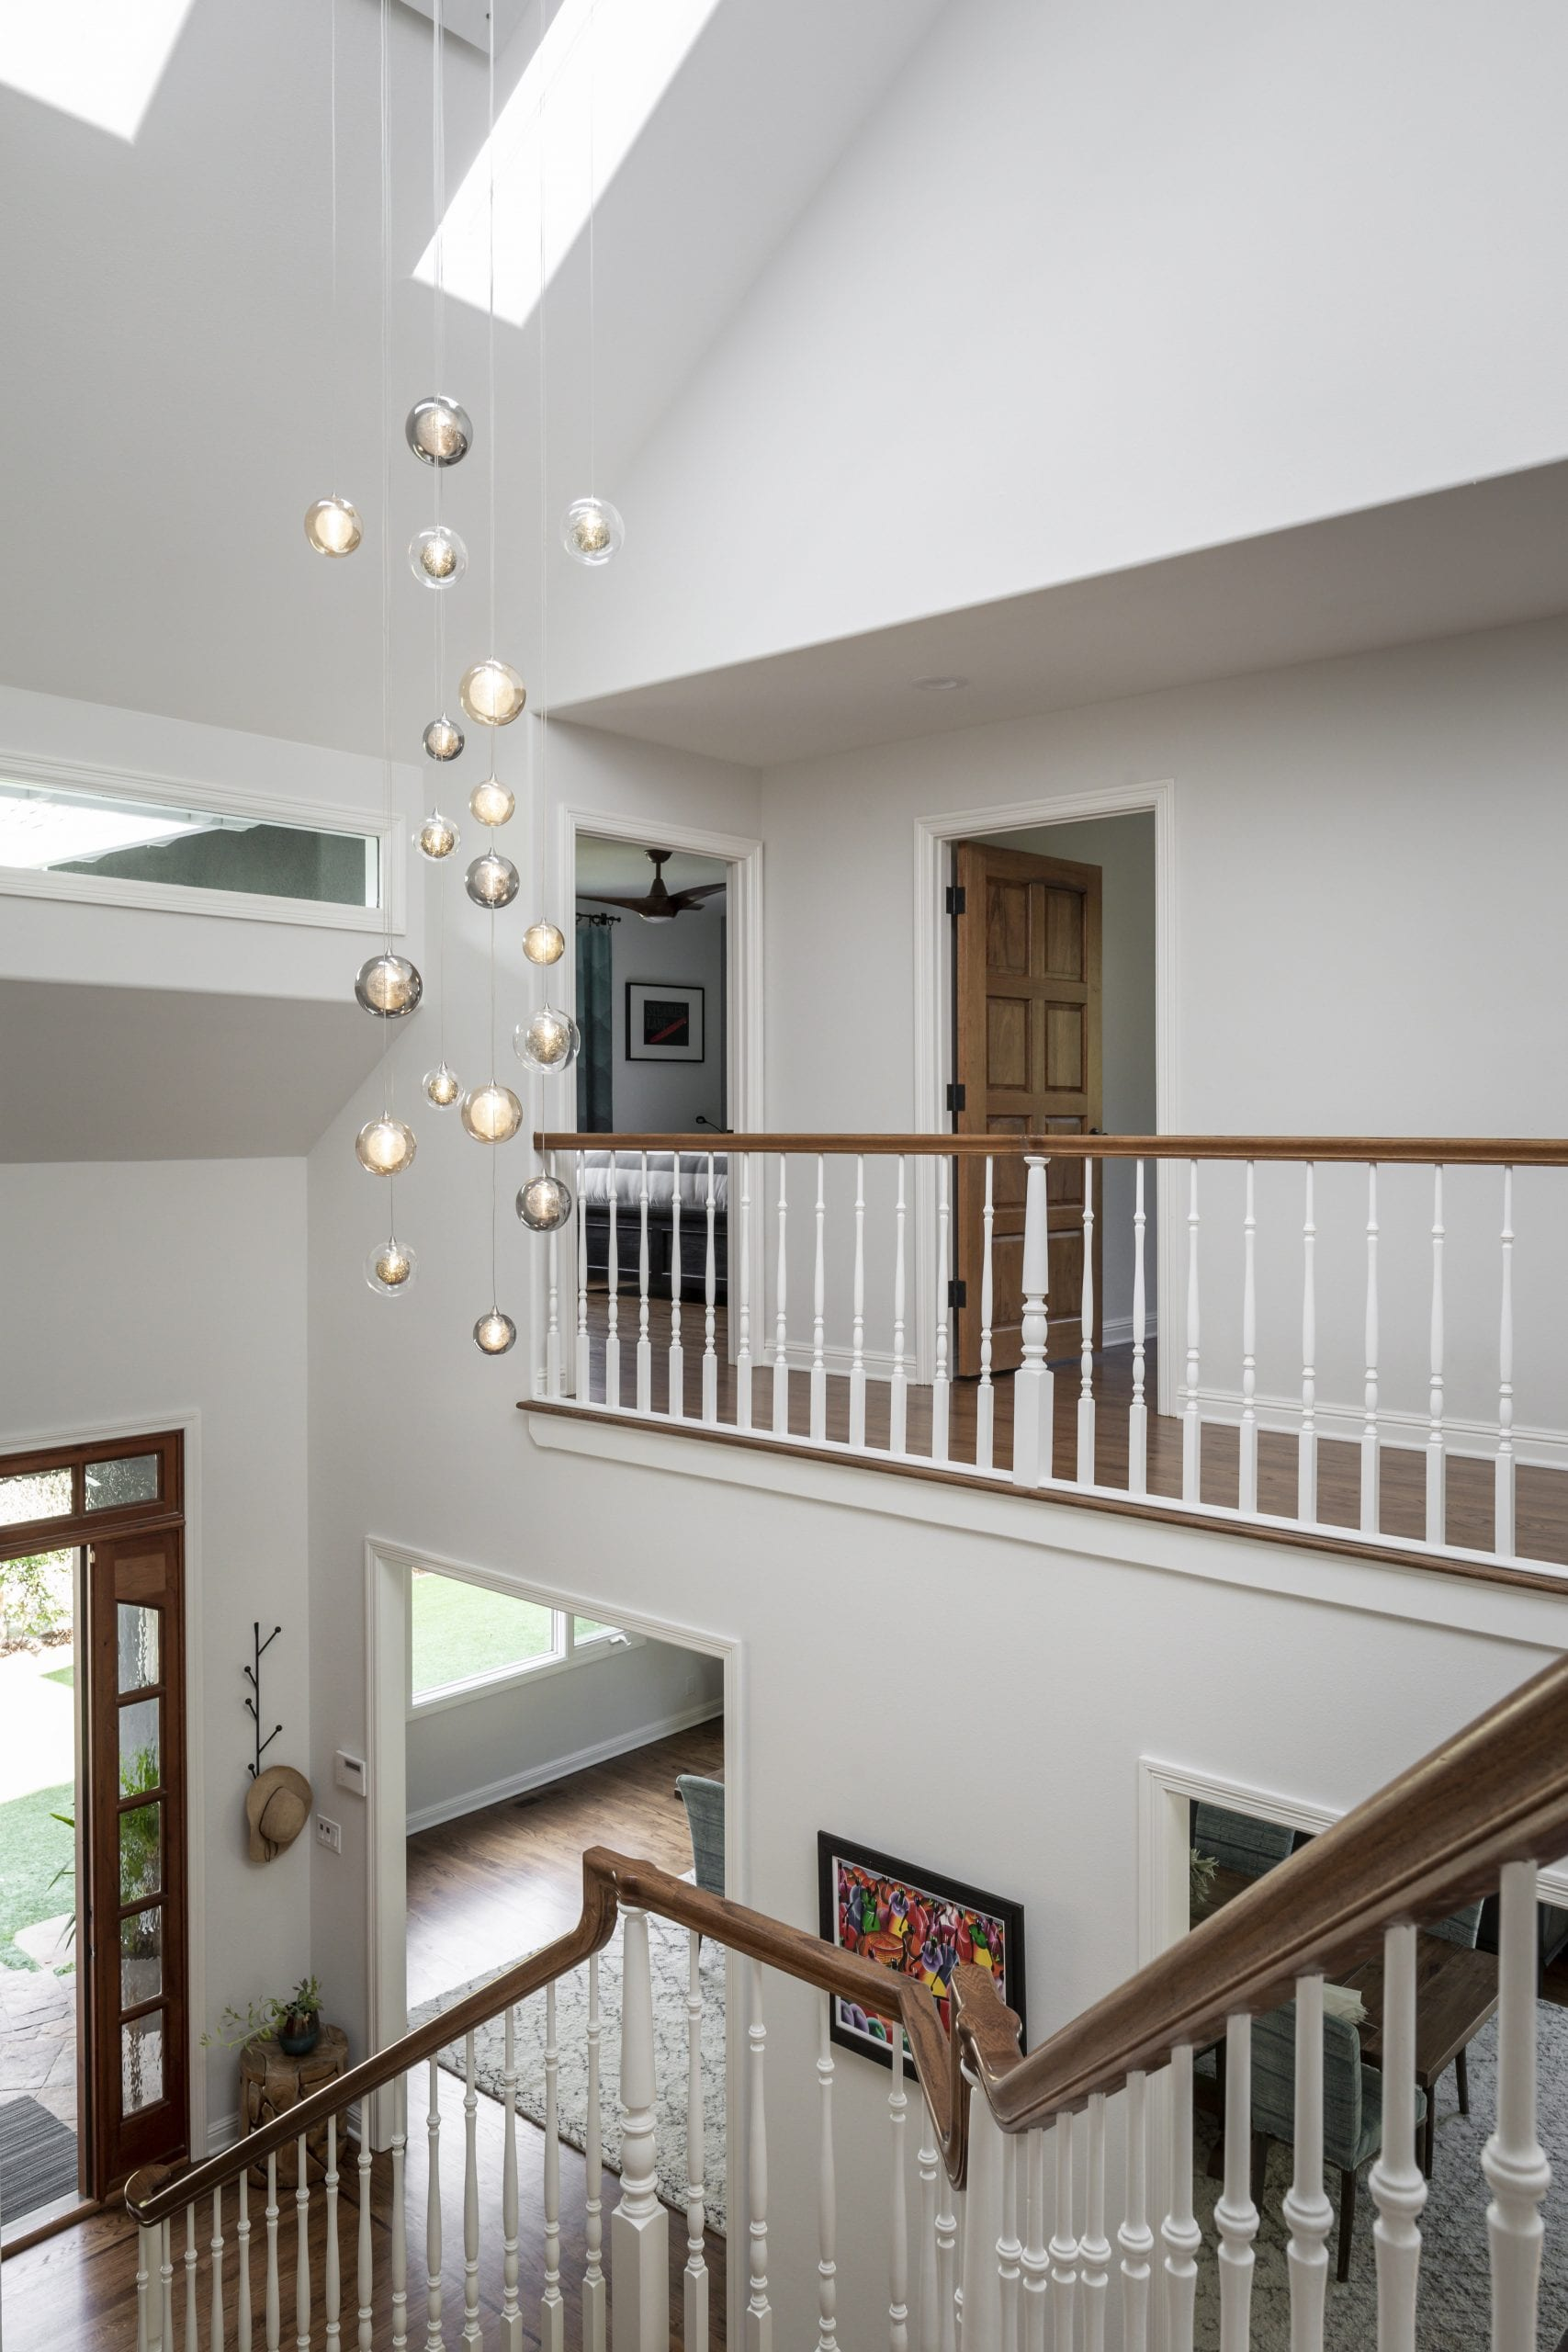 Upper level looking over front entrance with wood banister